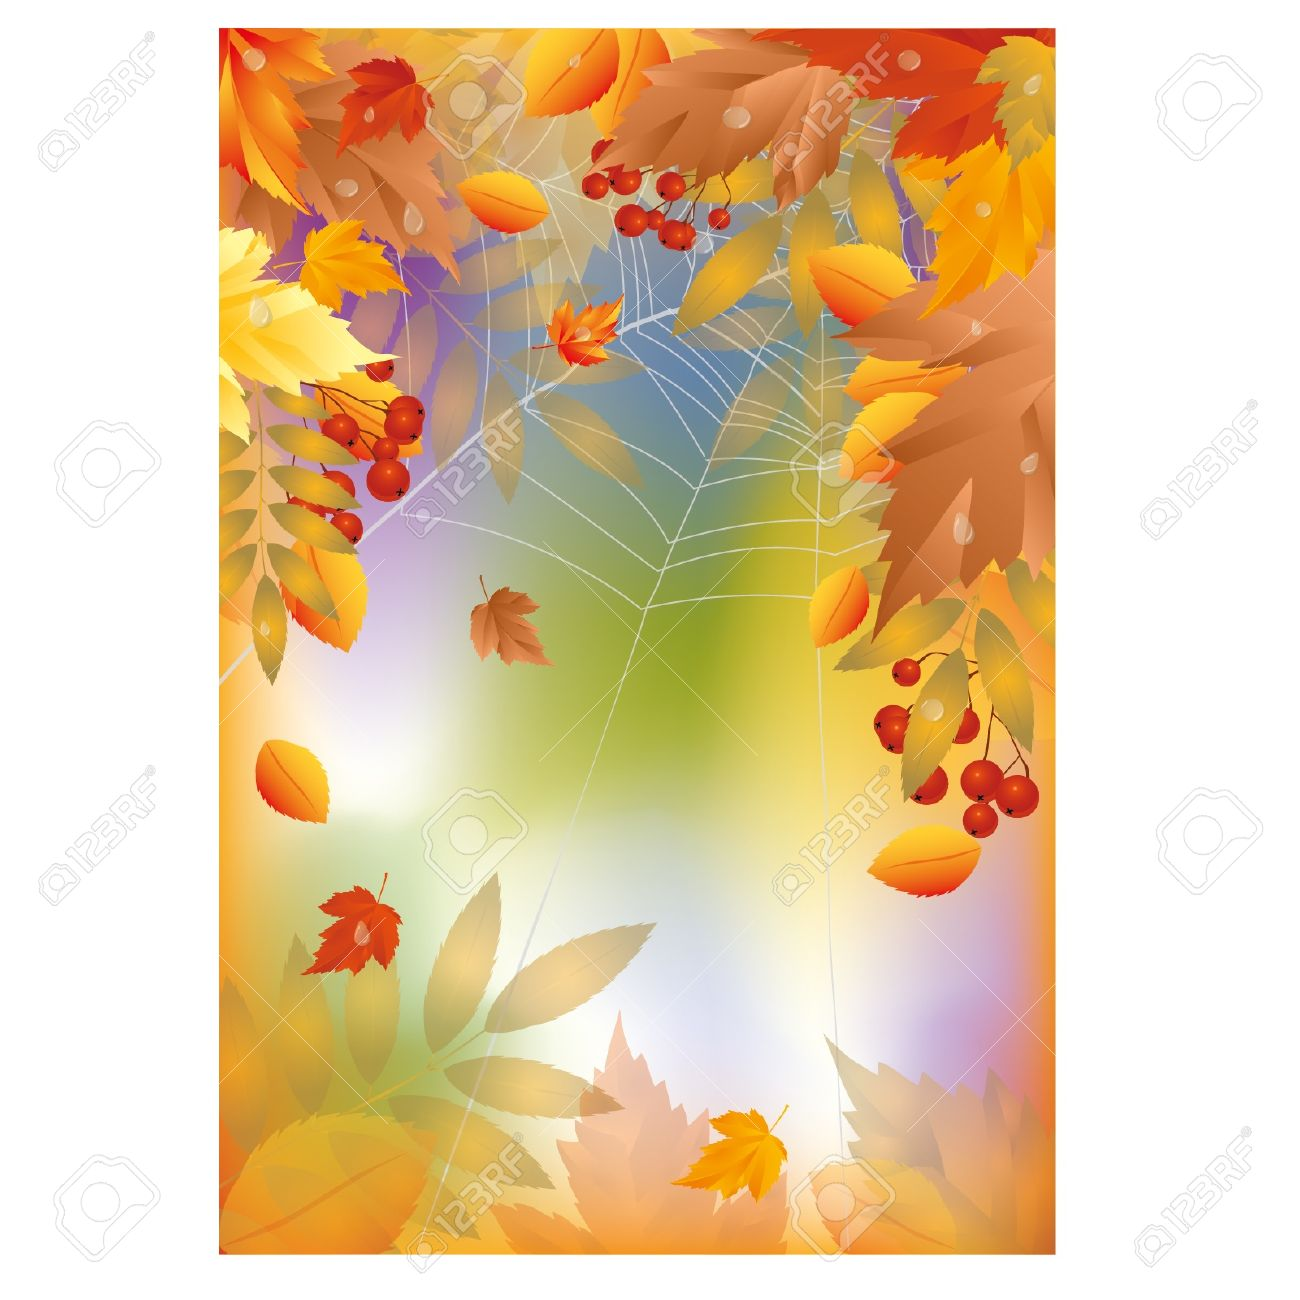 Autumn Banner With Spider Web, Illustration Royalty Free Cliparts.